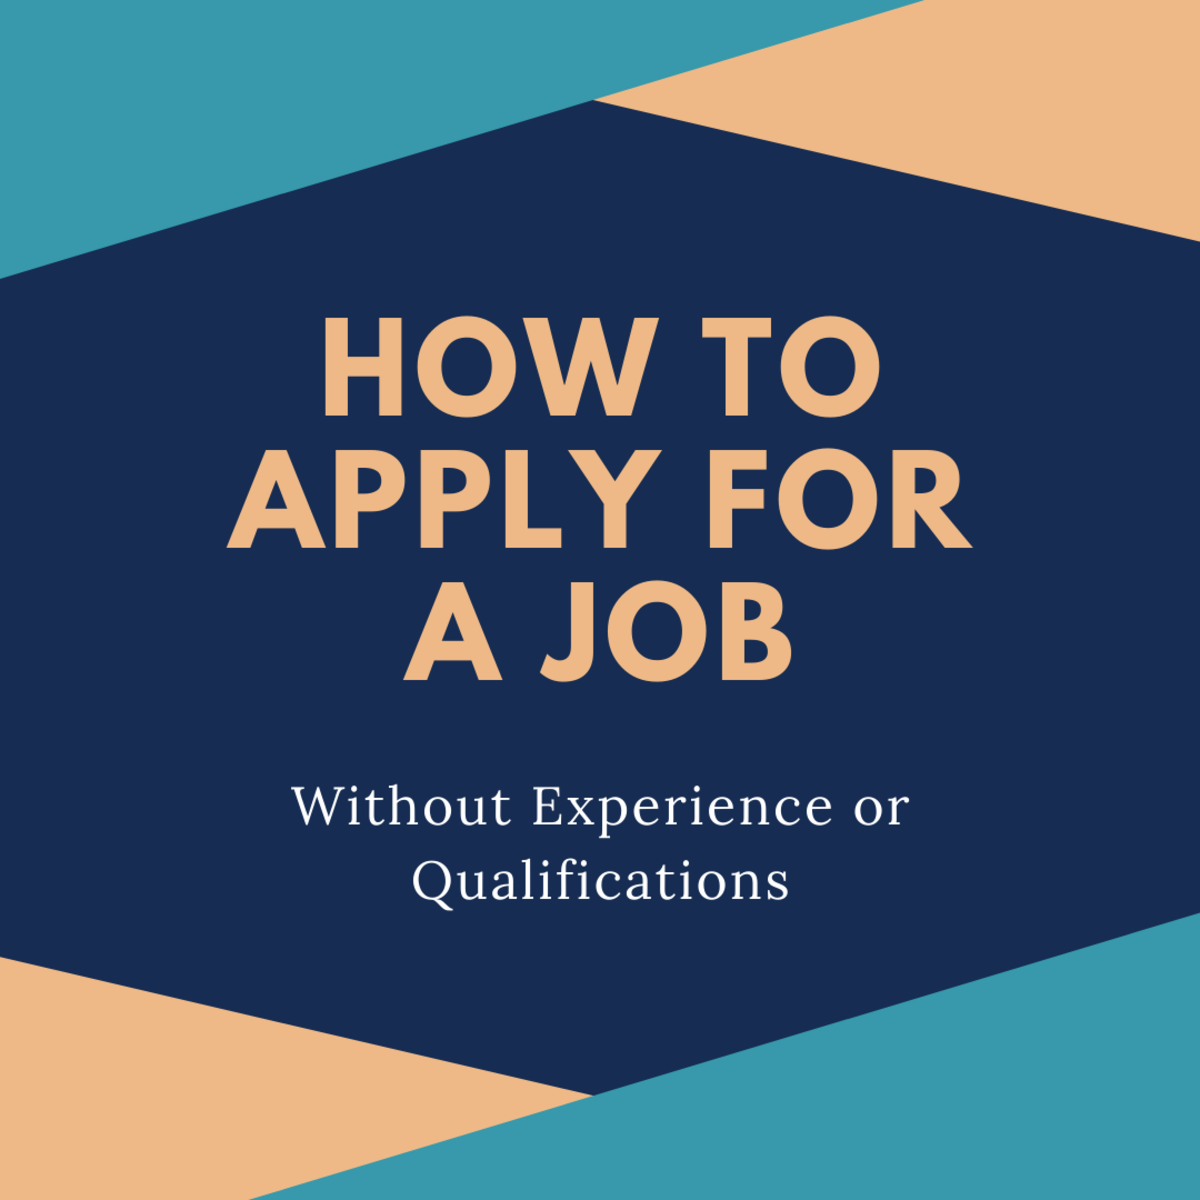 Applying for a Job Without Experience or Qualifications